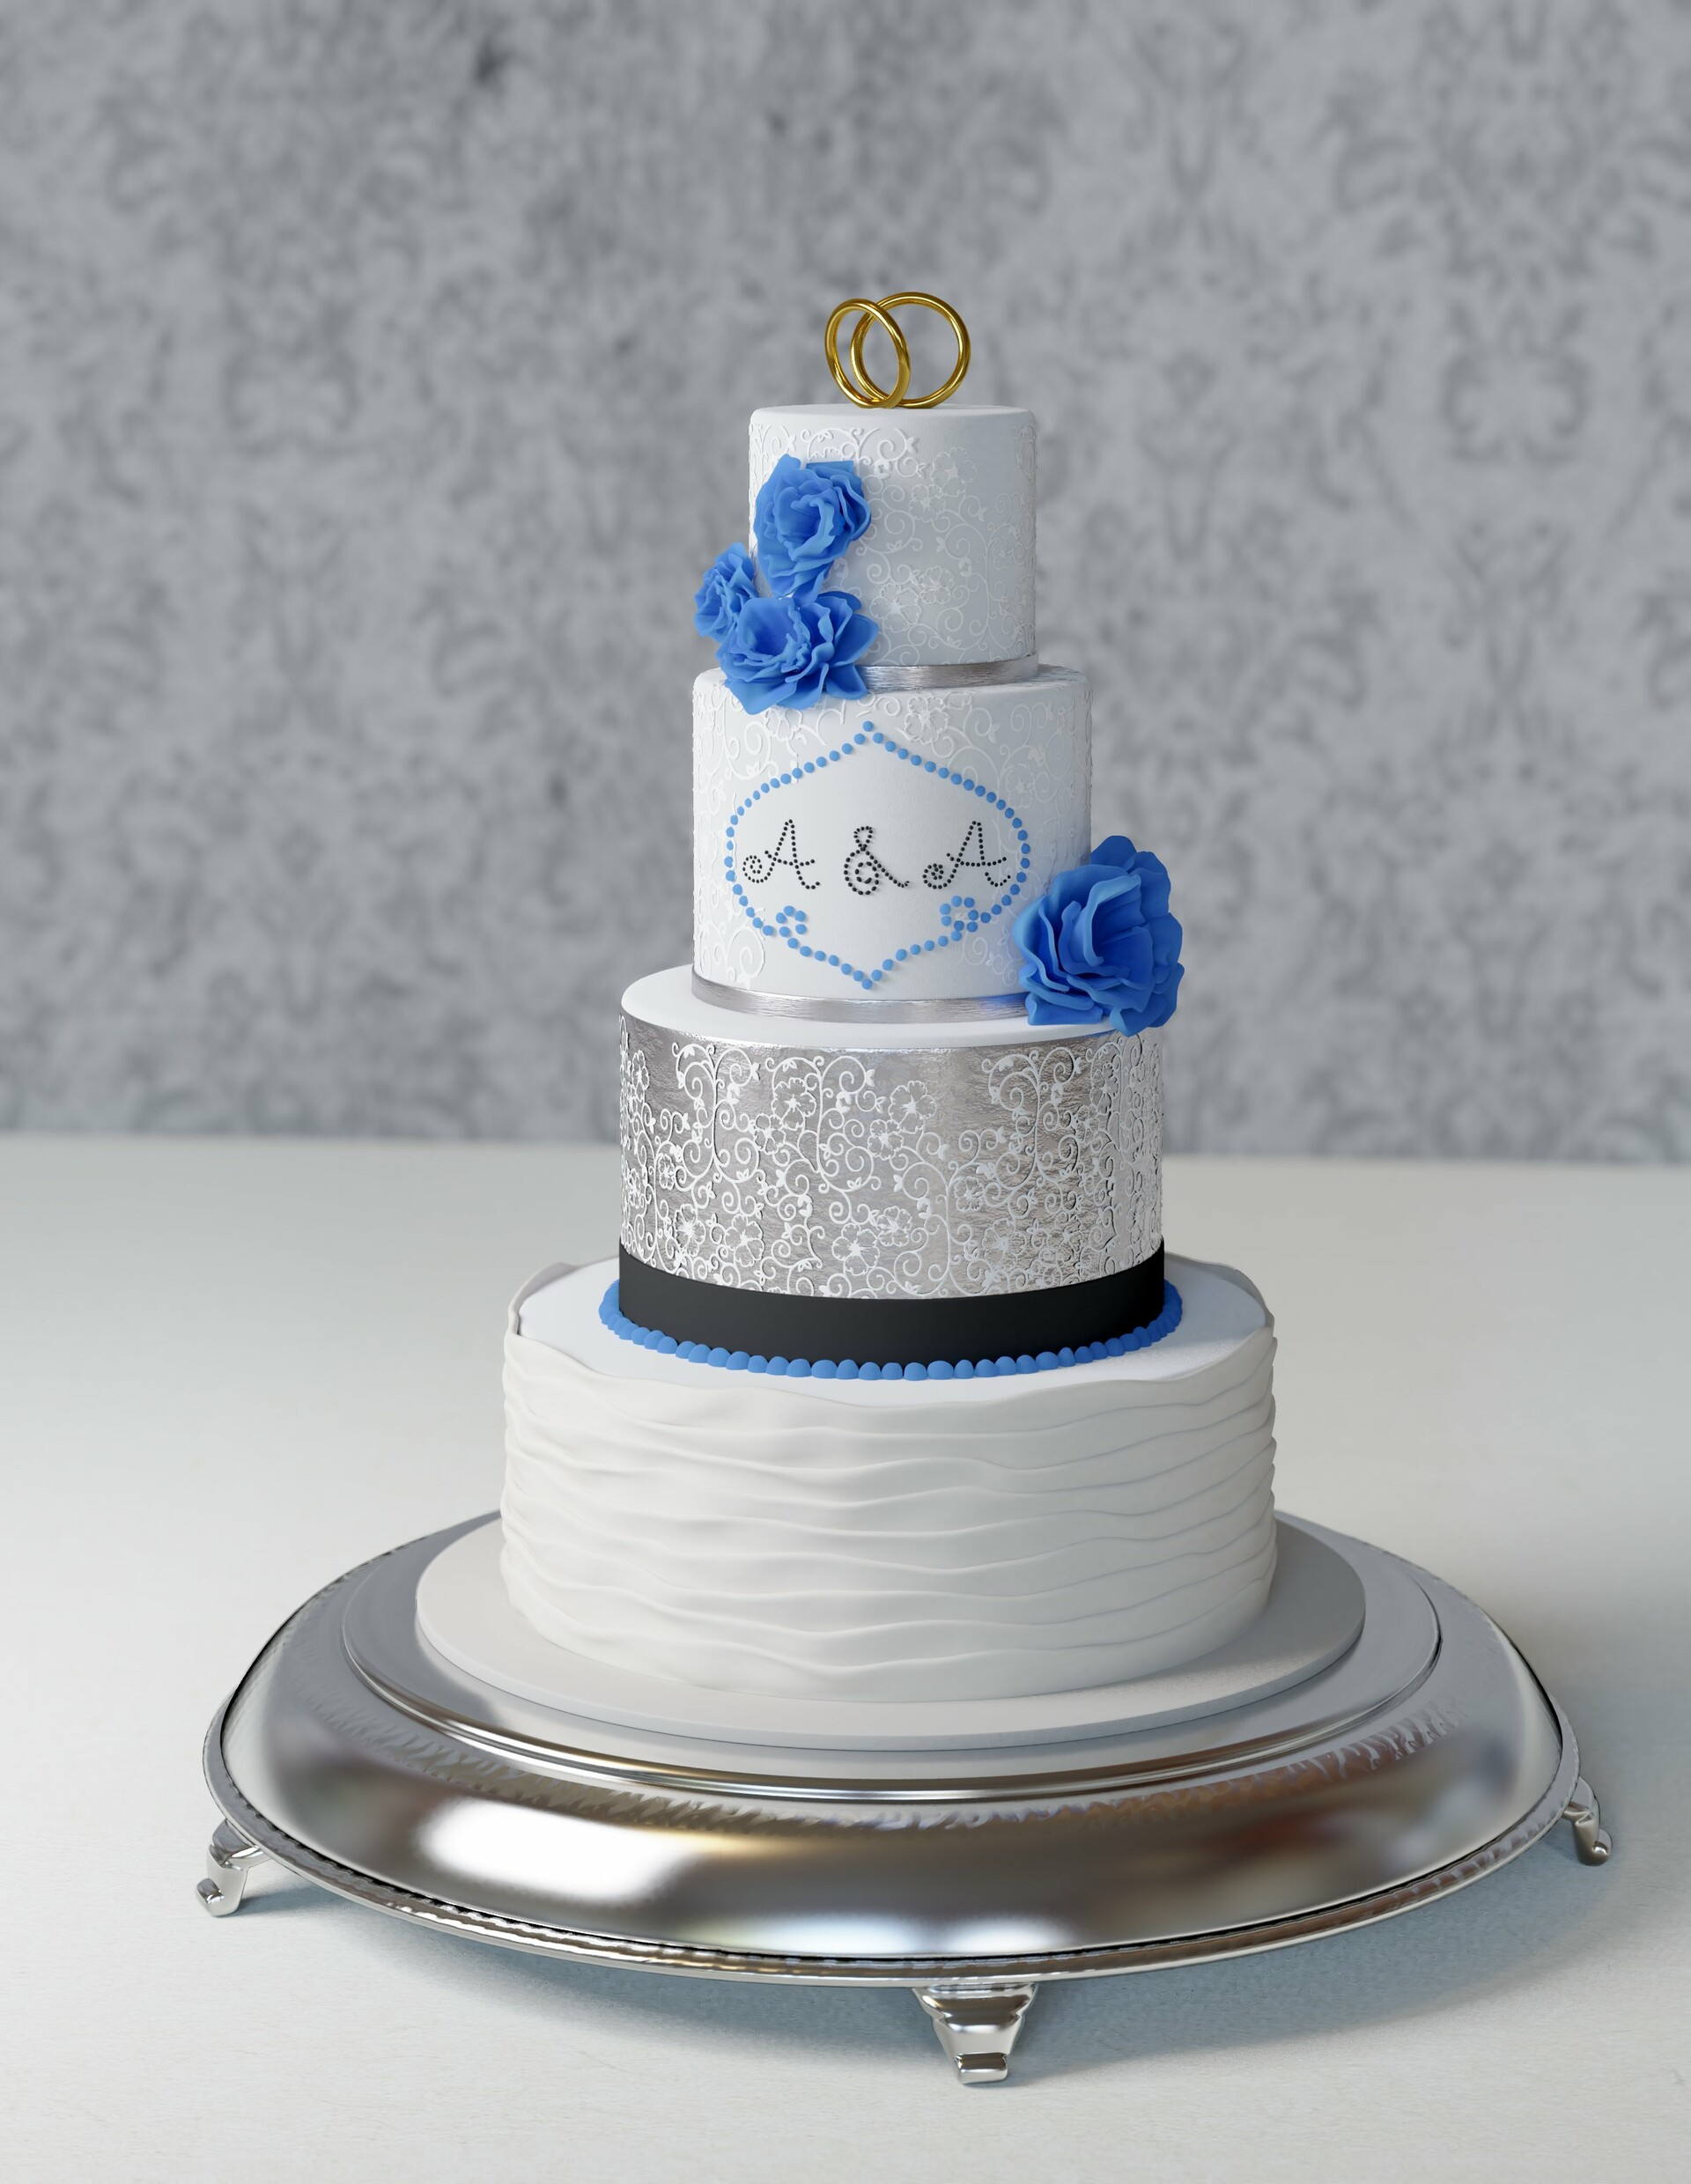 High-poly model and beauty render.